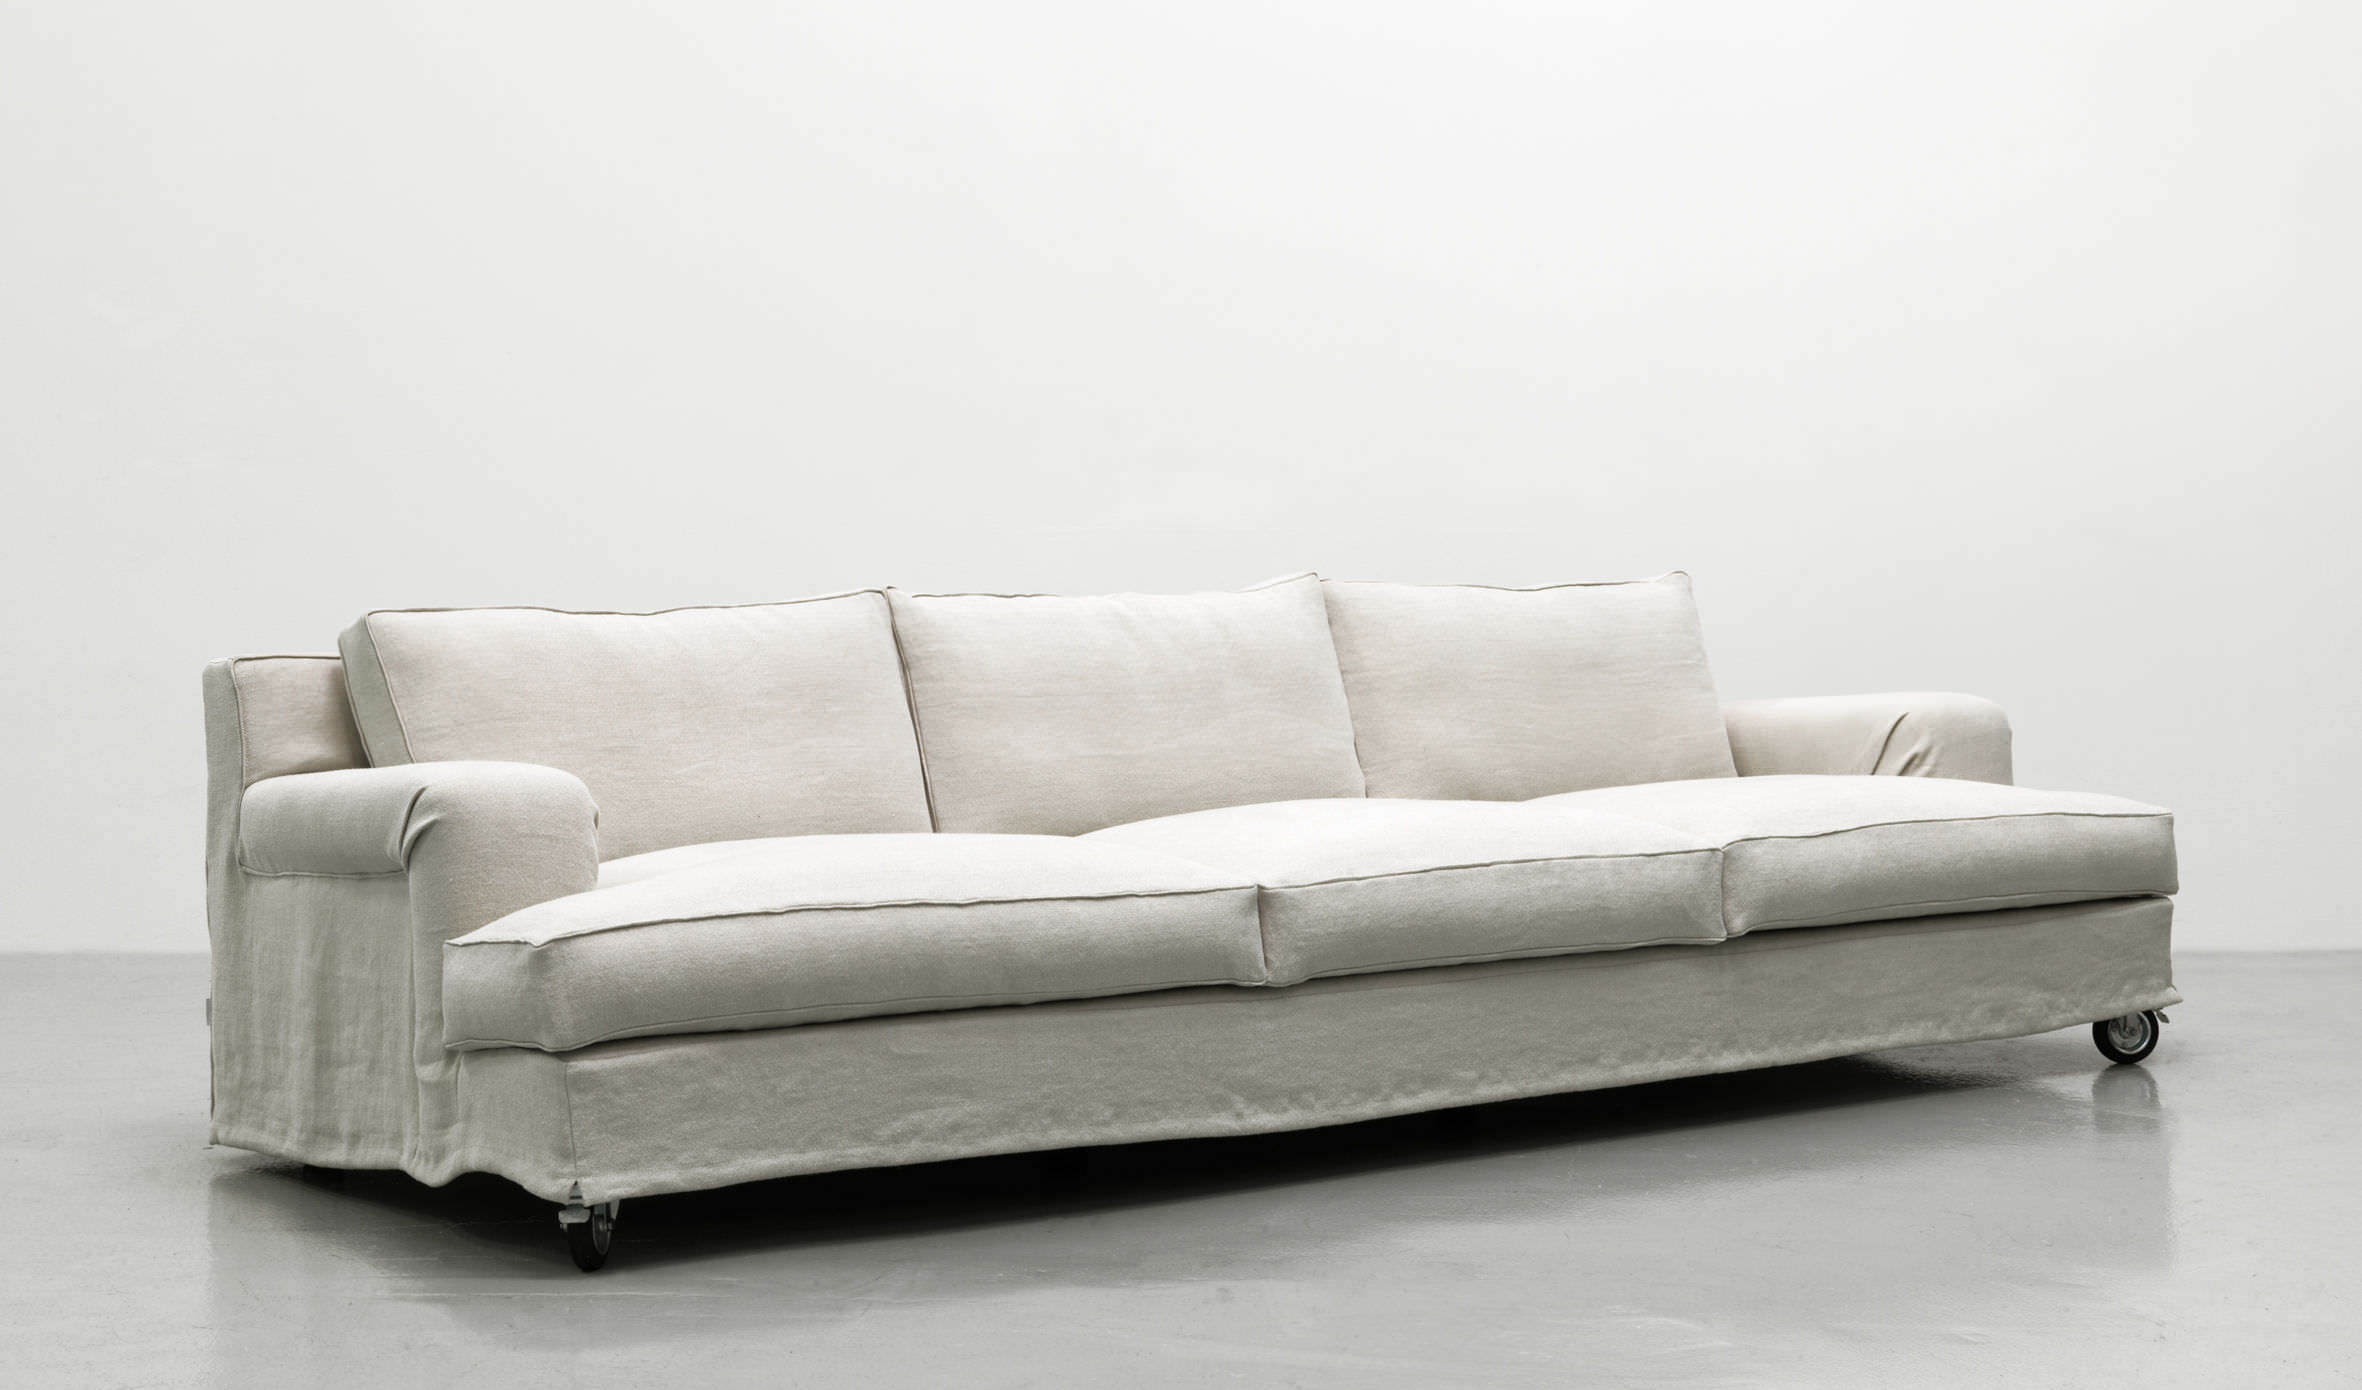 Contemporary Sofa / Fabric / 3 Seater / On Casters. ABERDEEN LEMA Home